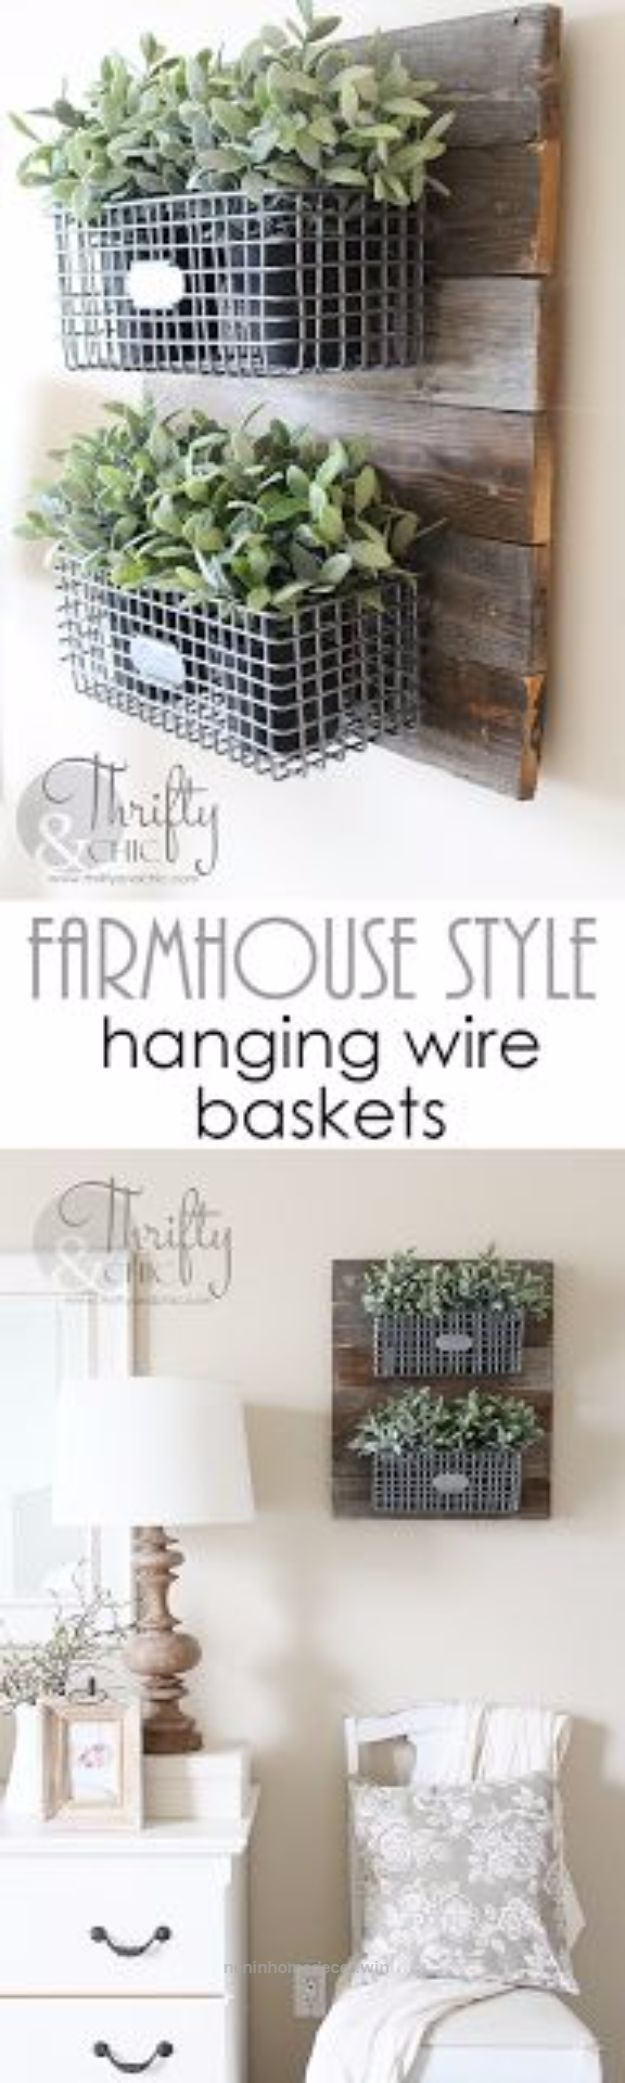 9783 best Shabby chic homes images on Pinterest   Organisation ideas ...